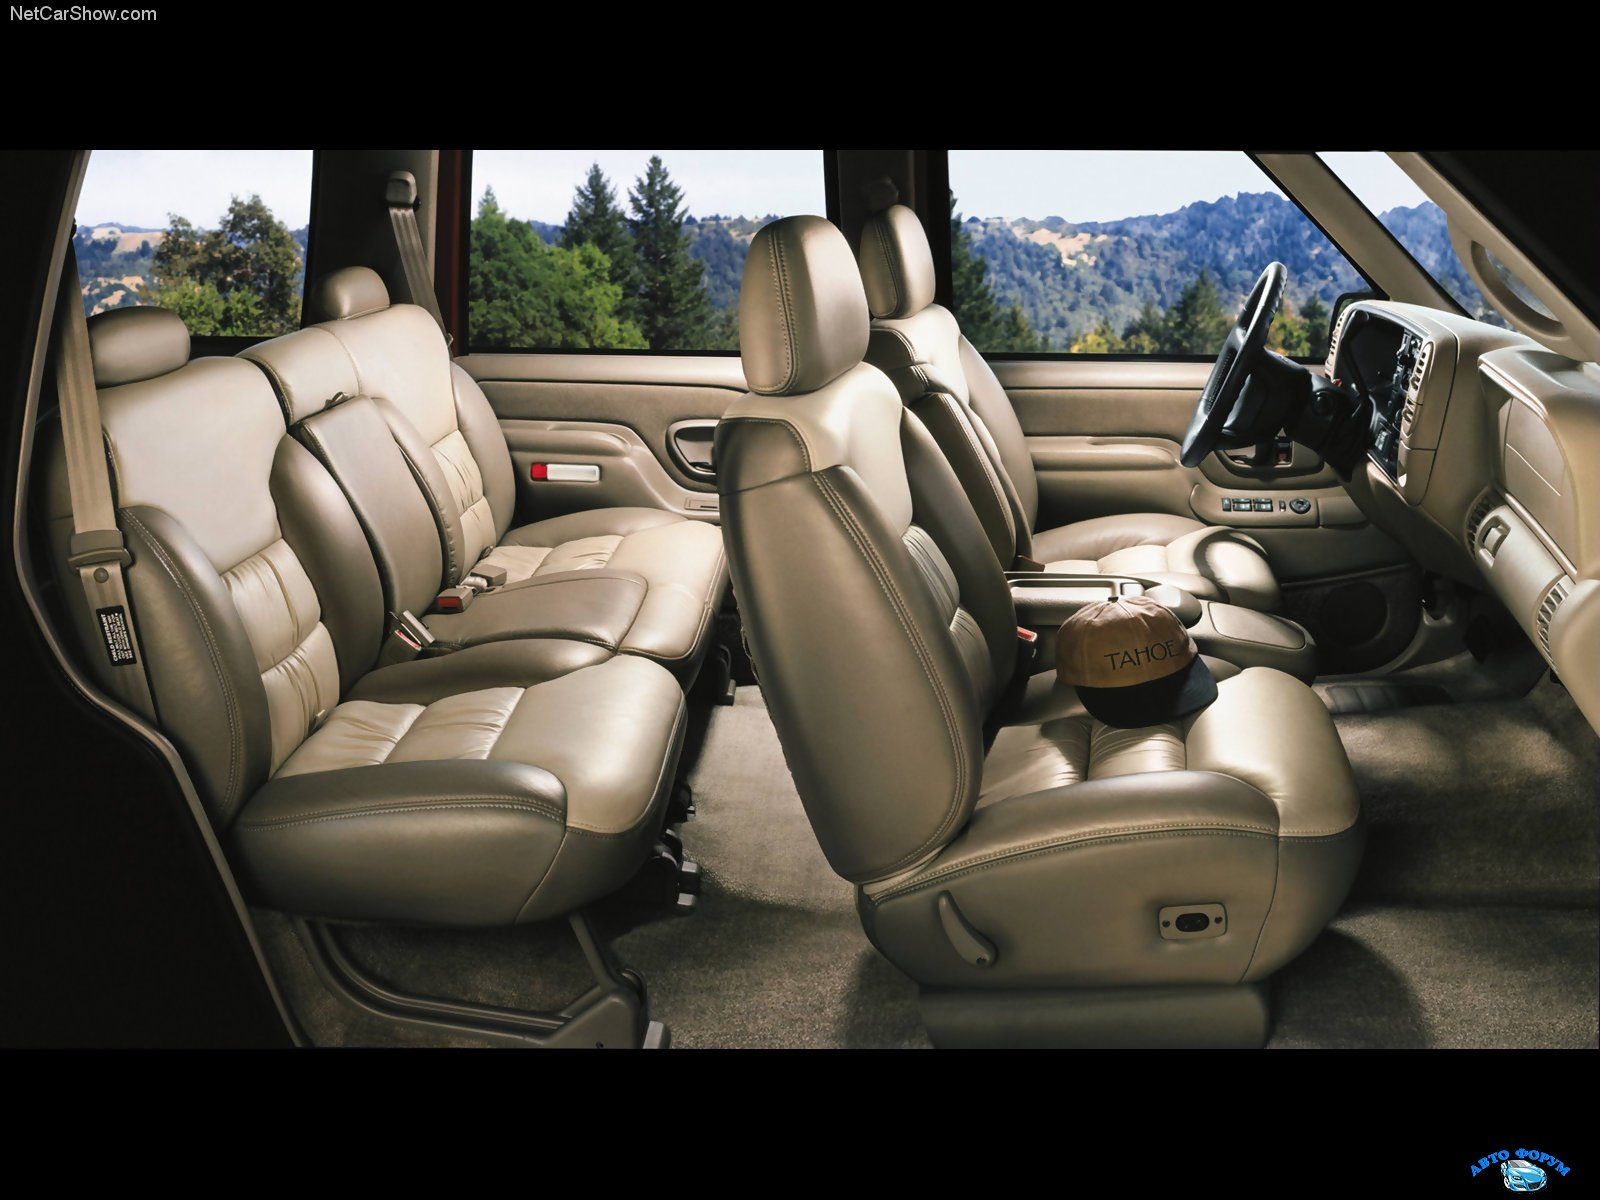 Chevrolet-Tahoe_2000_1600x1200_wallpaper_0b.jpg